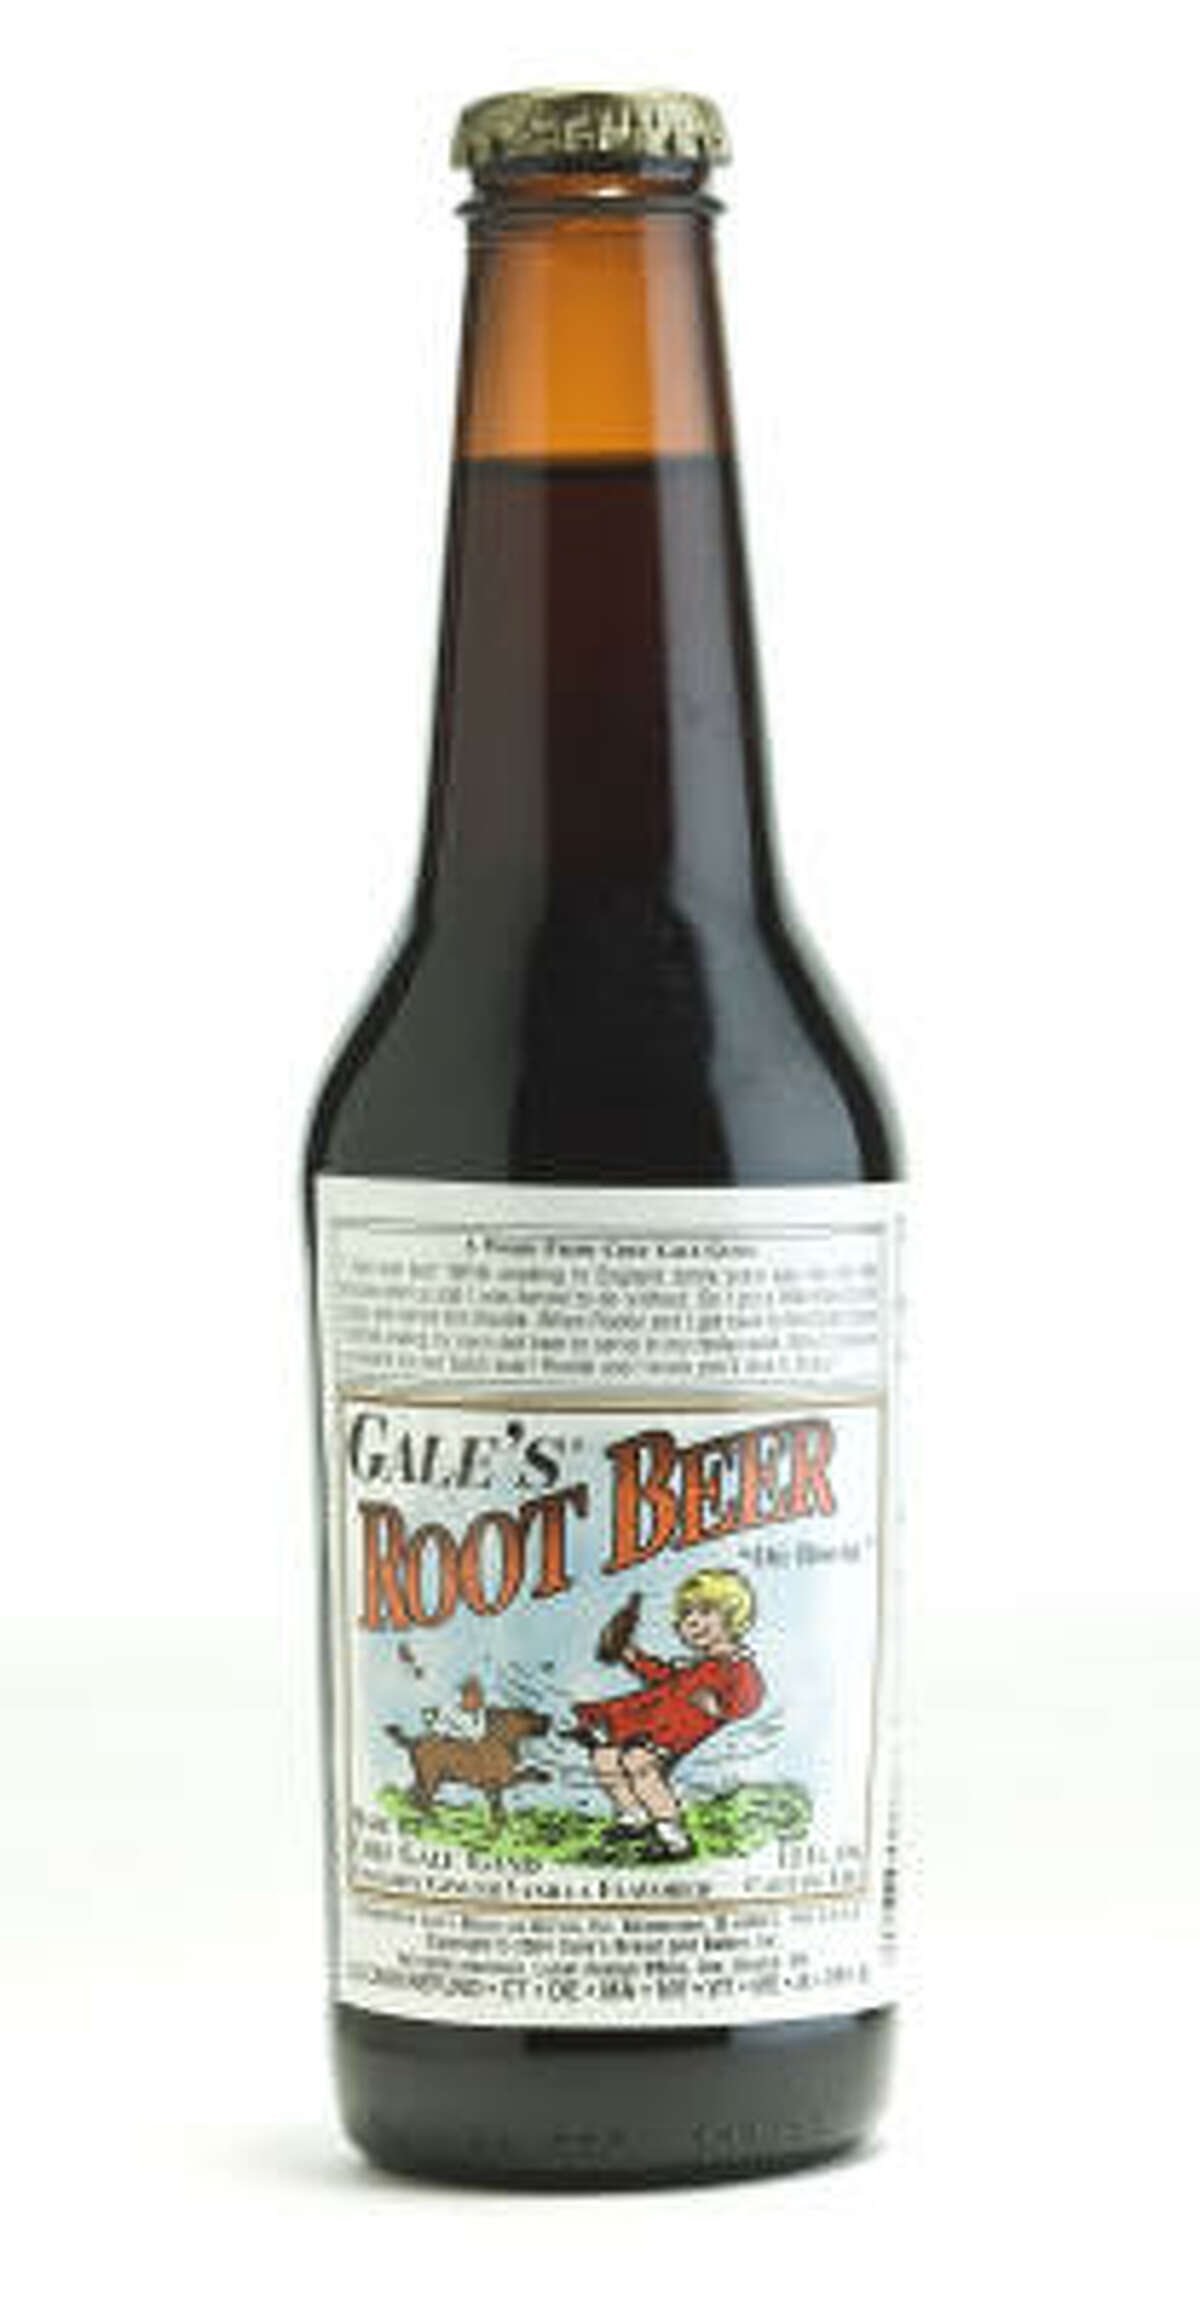 Start with your favorite brand of root beer.